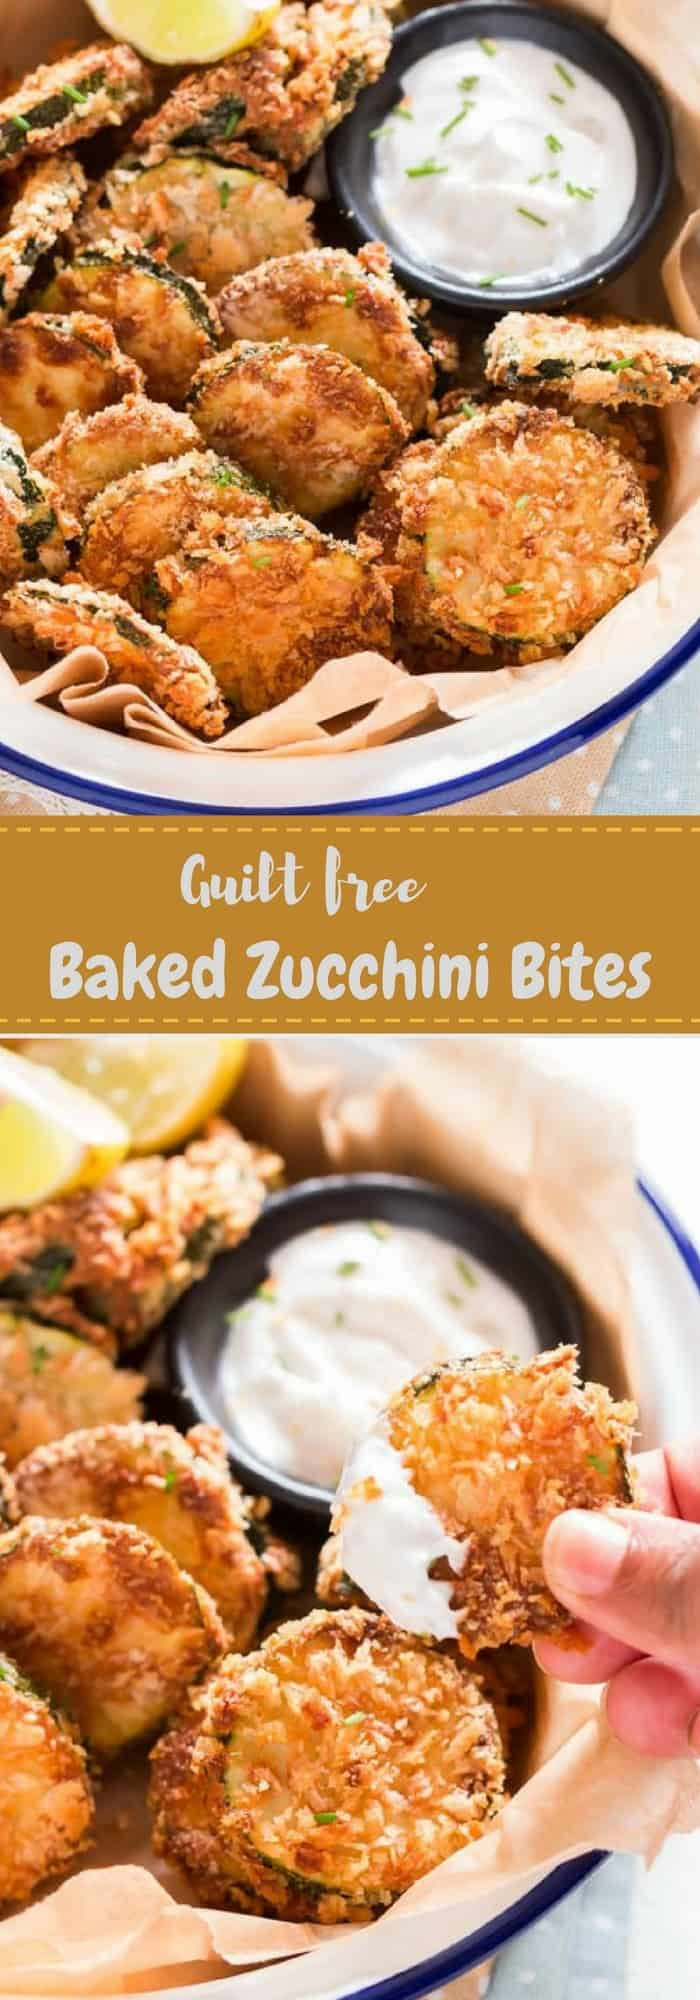 Baked Zucchini Chips with Text Overlay